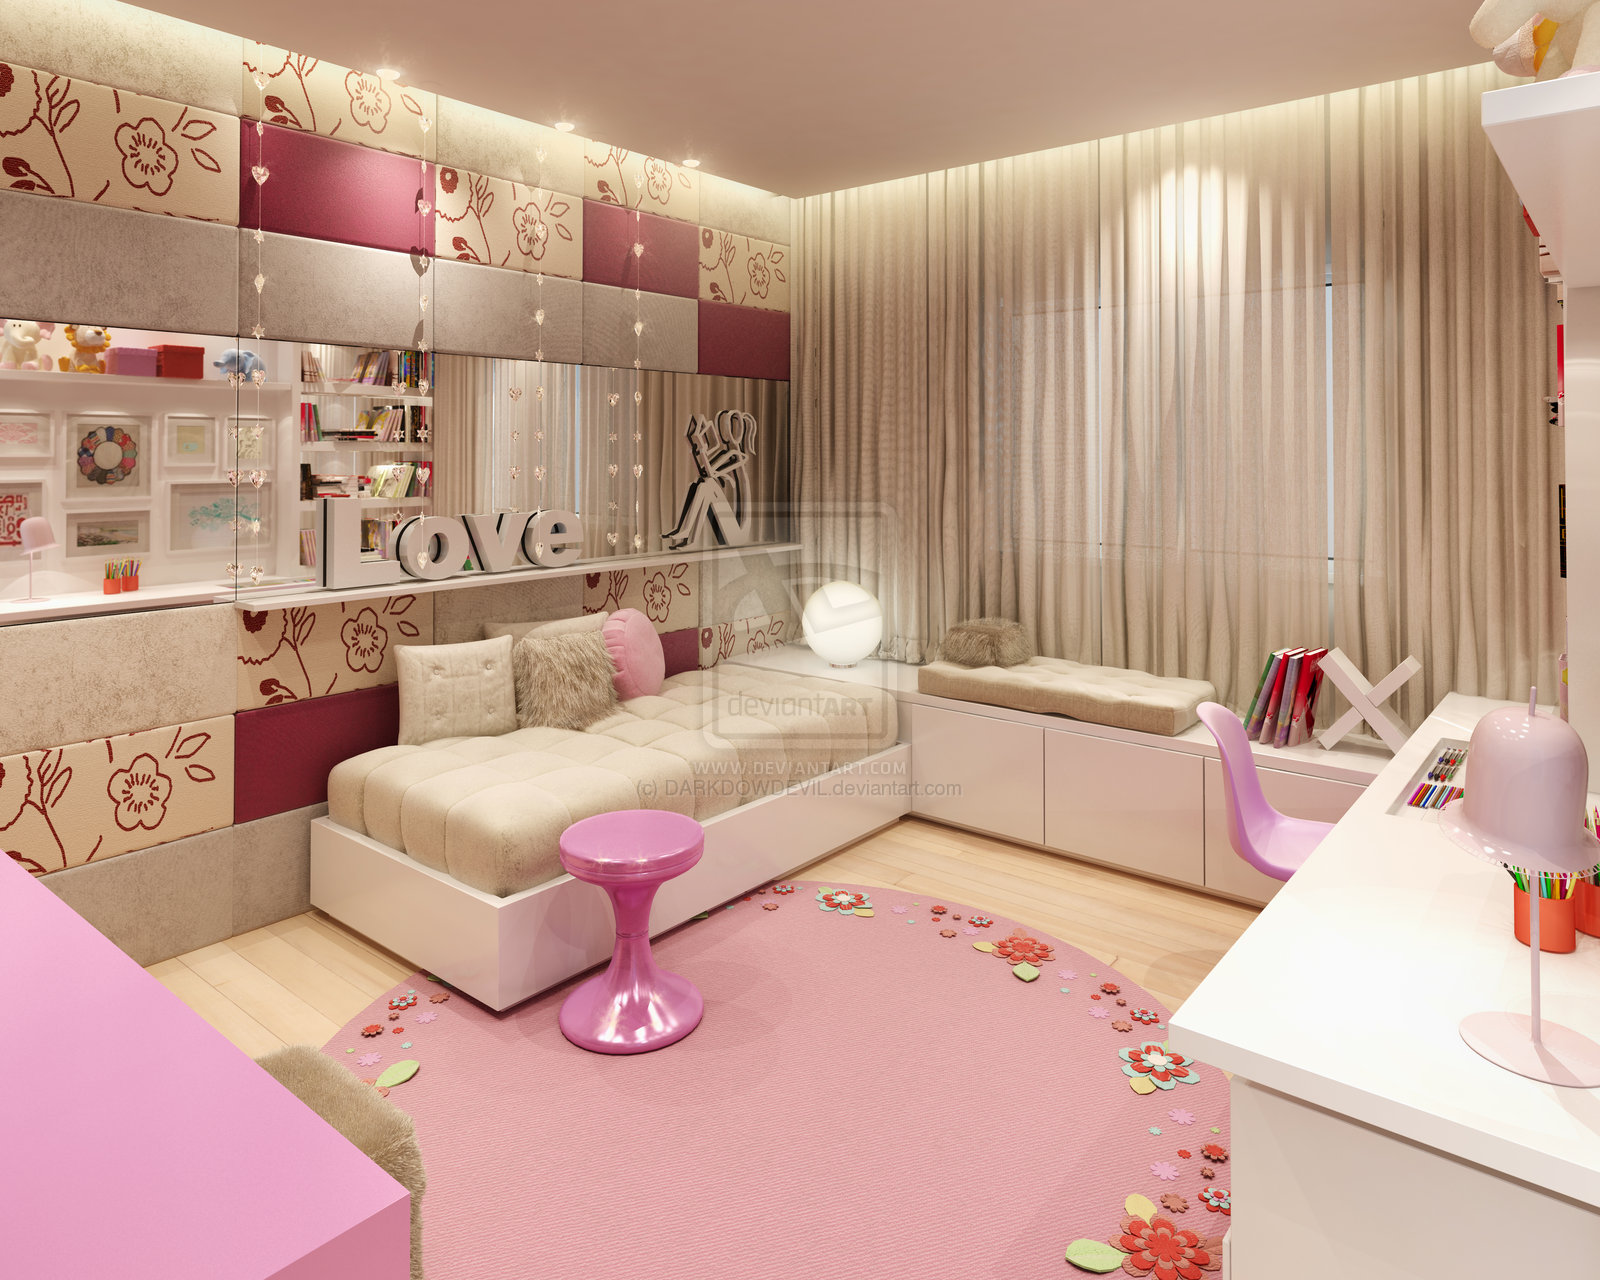 Home design interior monnie best girl bedrooms in the world - Designer bedrooms for women ...